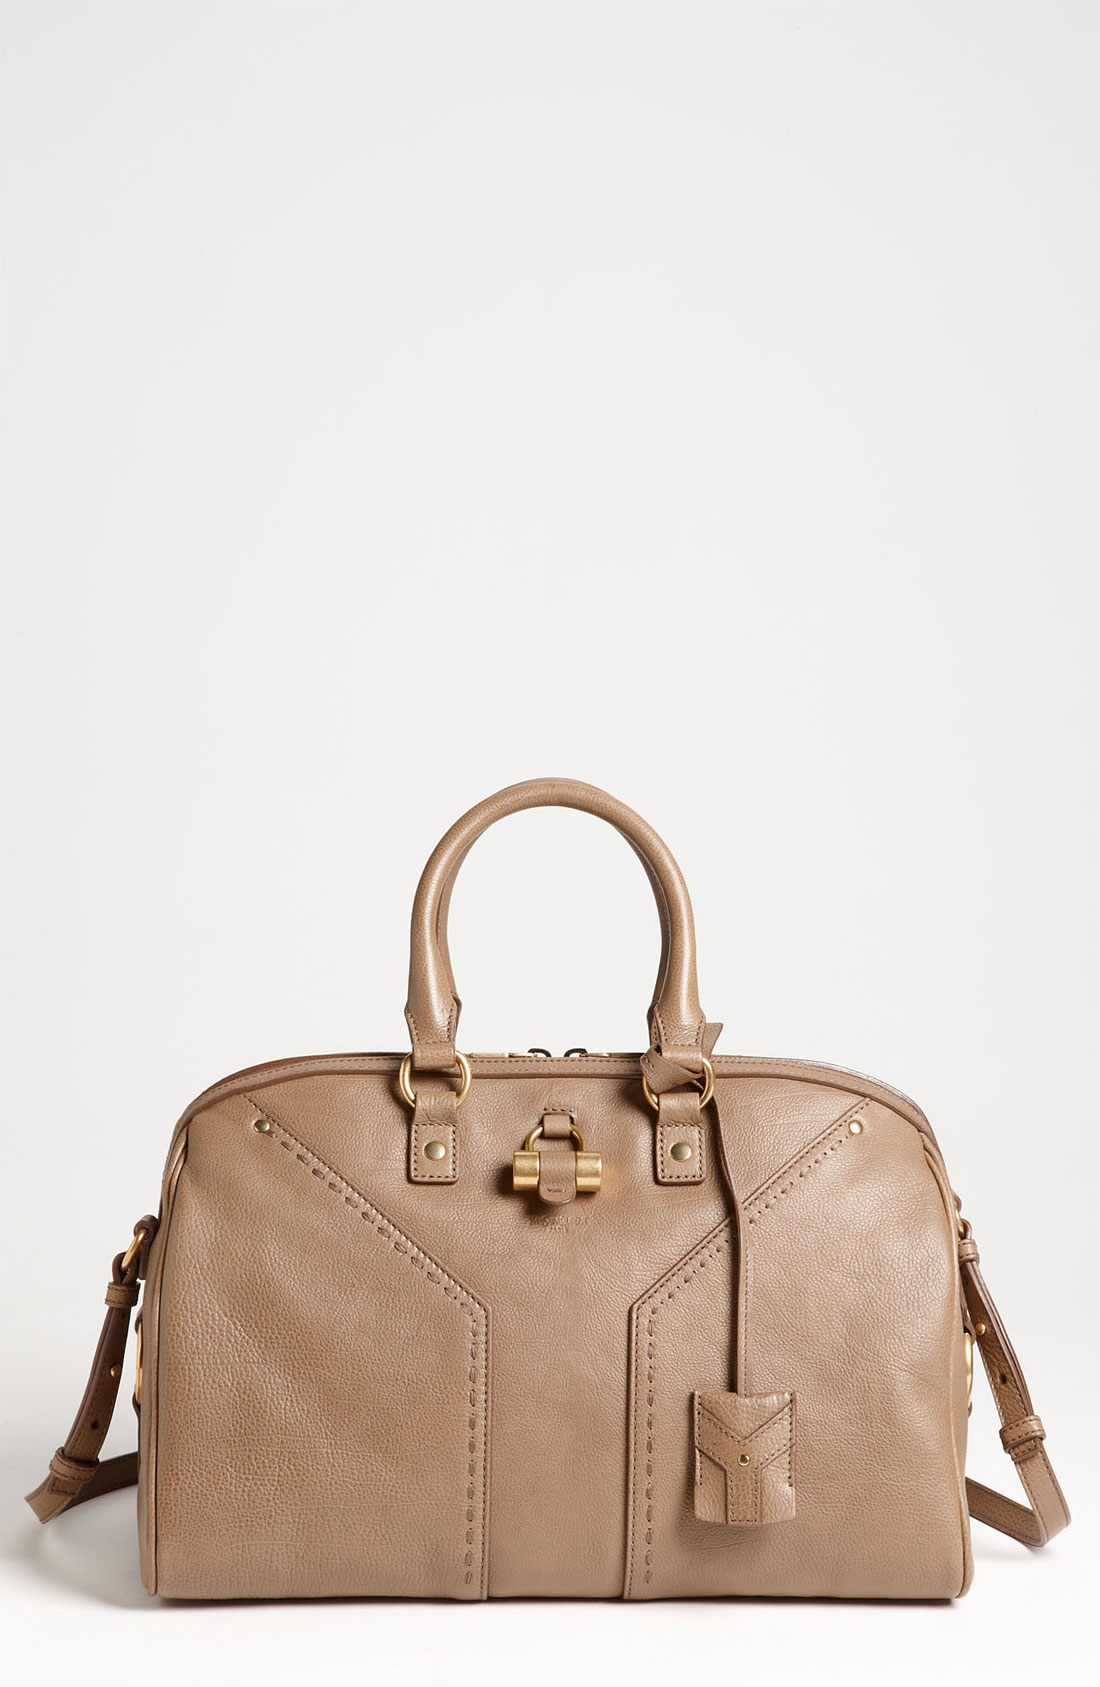 Saint laurent Muse Leather Satchel in Beige (dove beige) | Lyst